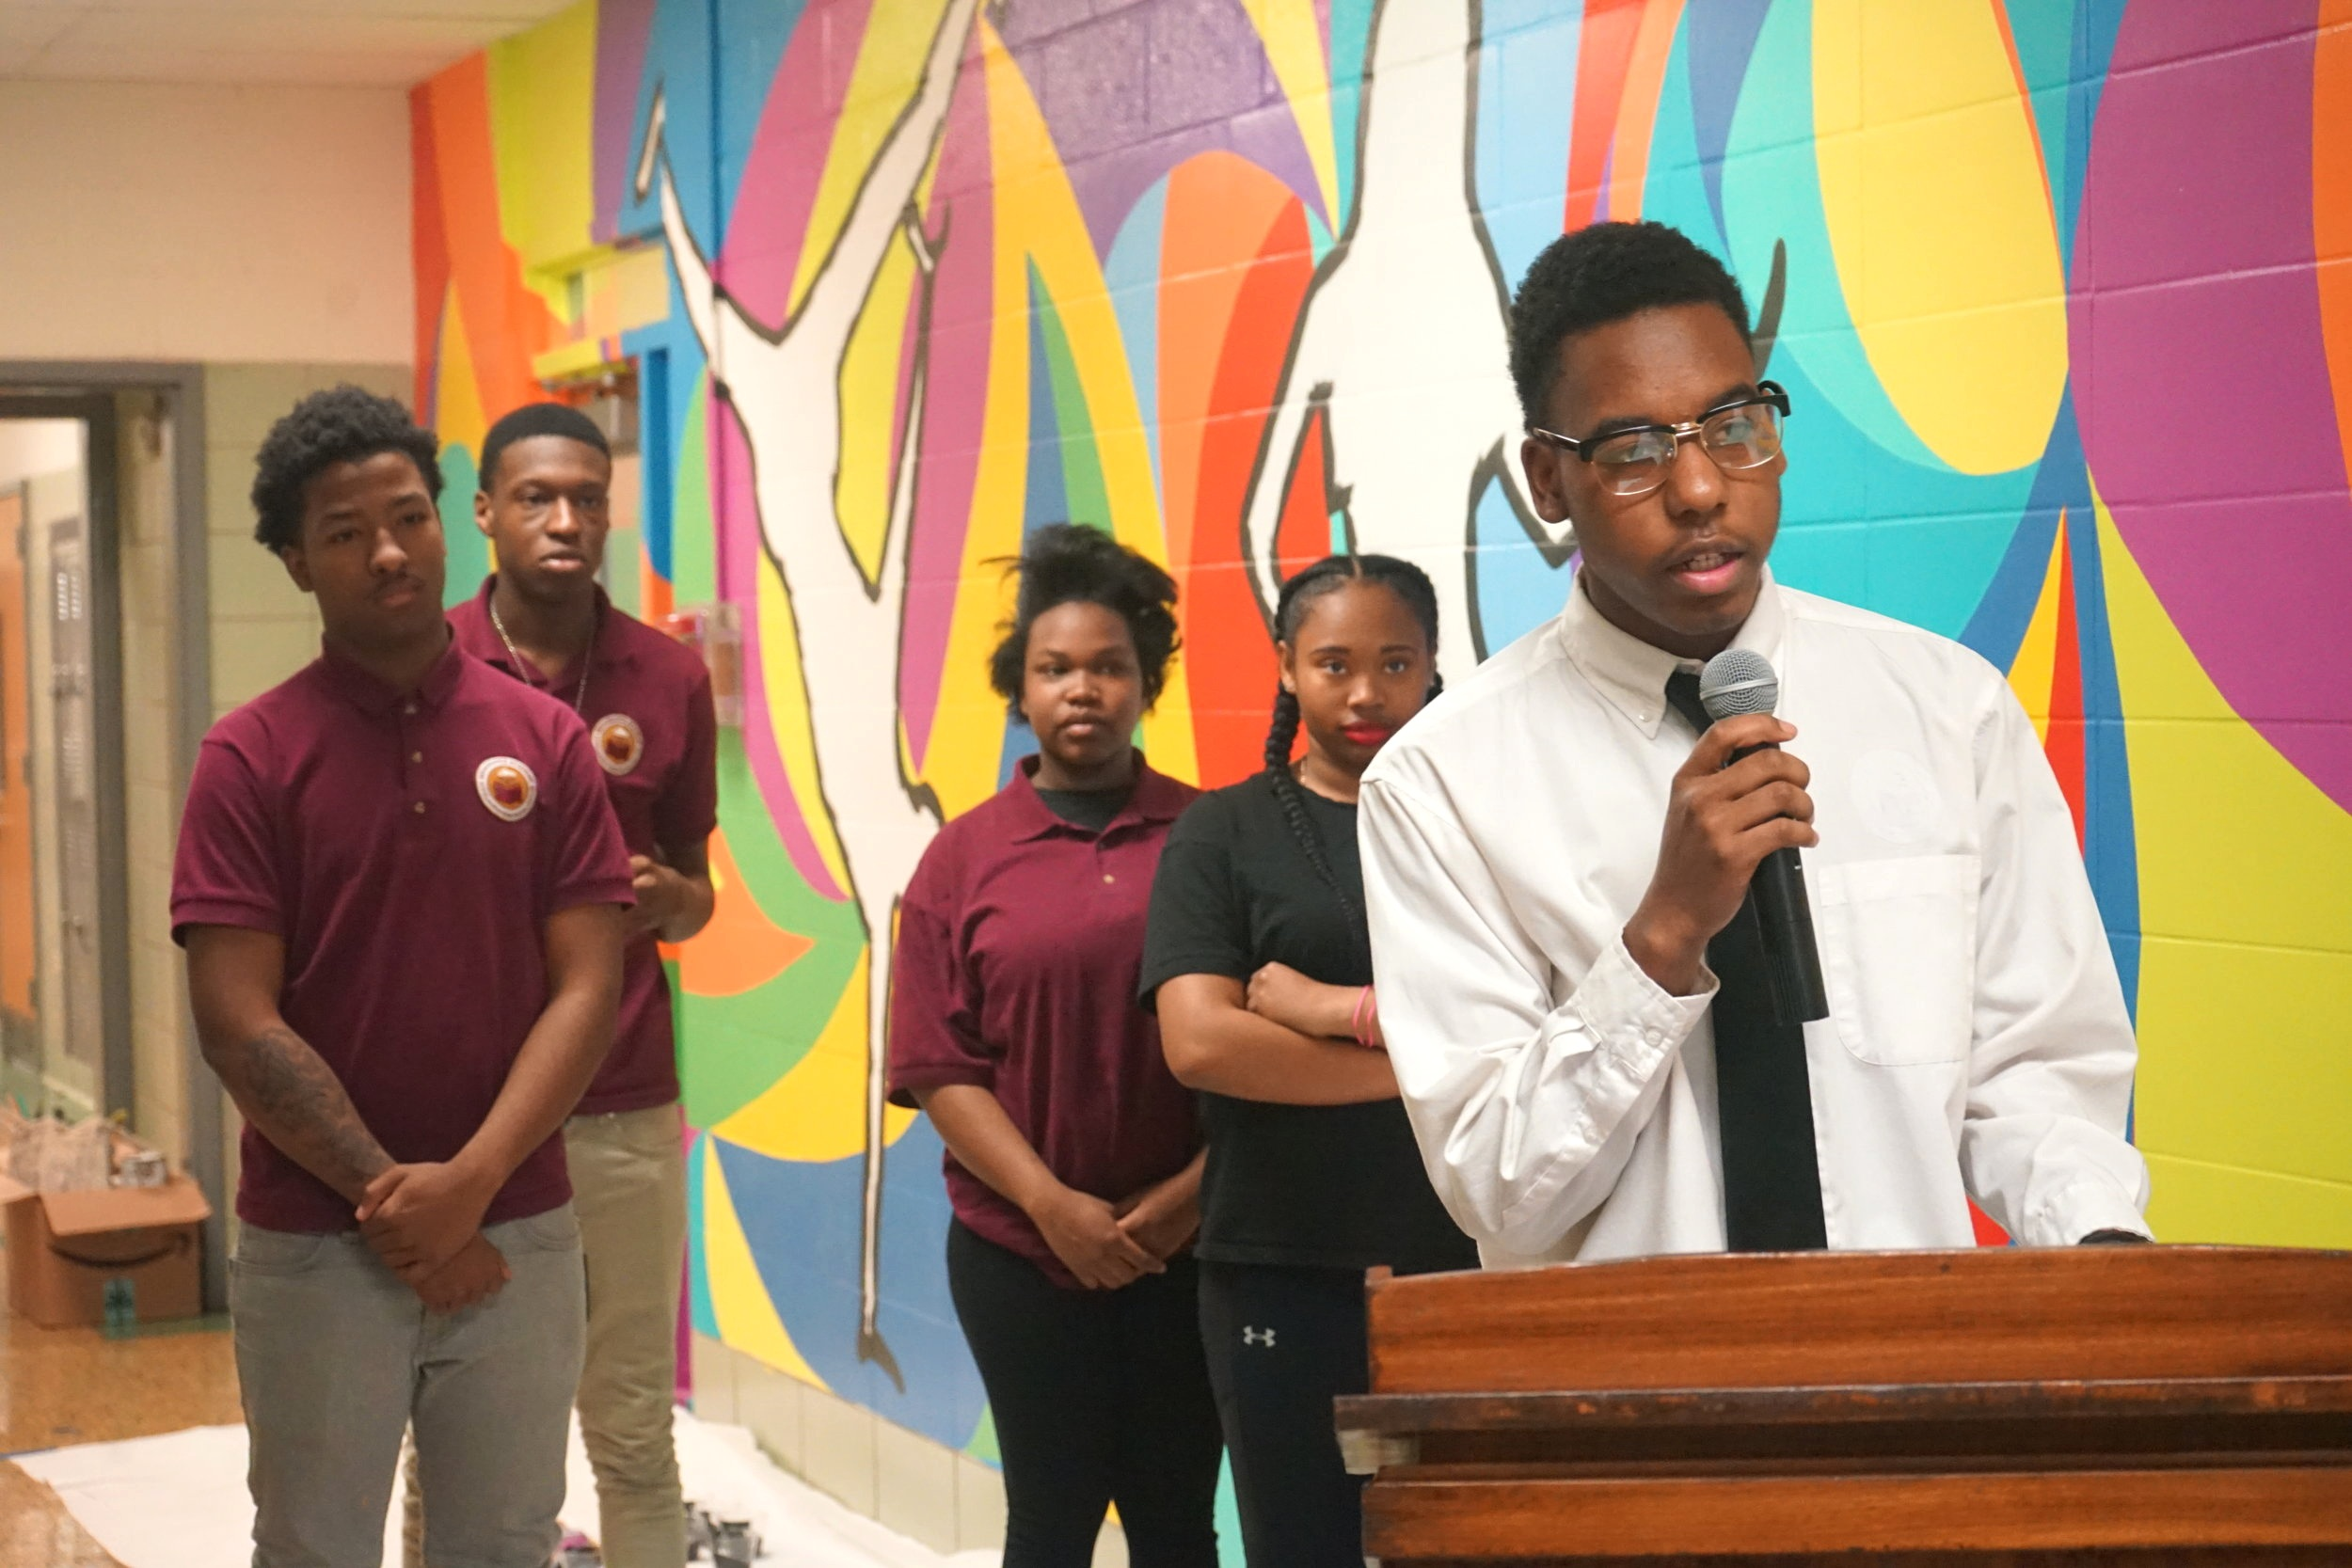 With the support of his classmates behind him, Kevin Flemming, a junior at Renaissance Academy delivers his speech to the audience during the mural unveiling.